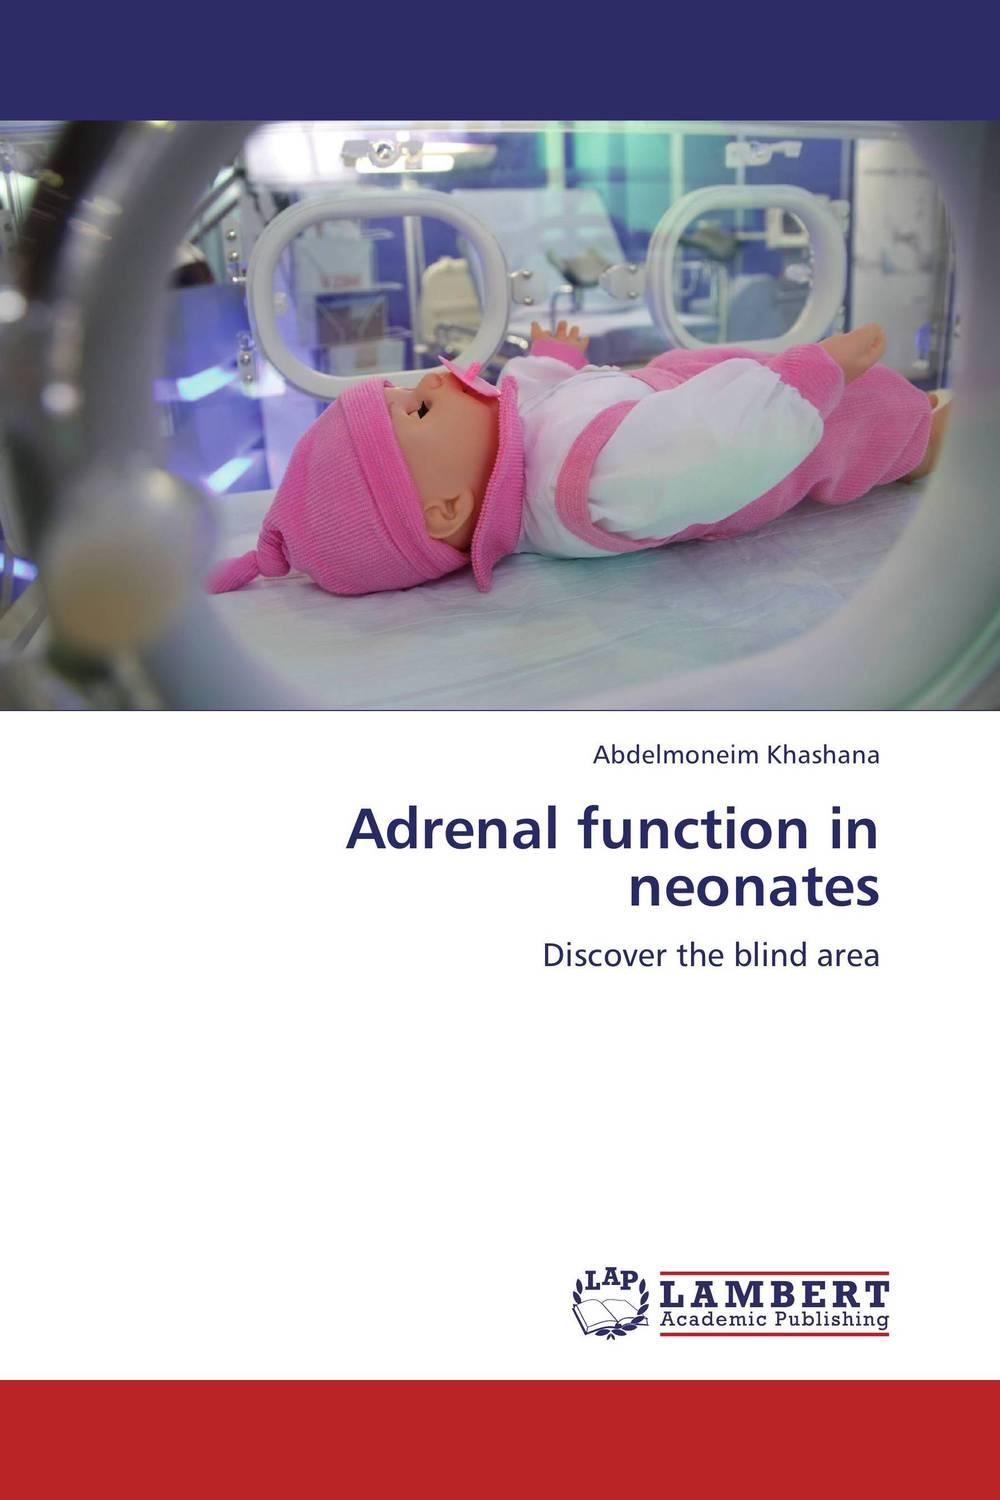 Adrenal function in neonates benign enlargement of prostate gland bep in ayurveda